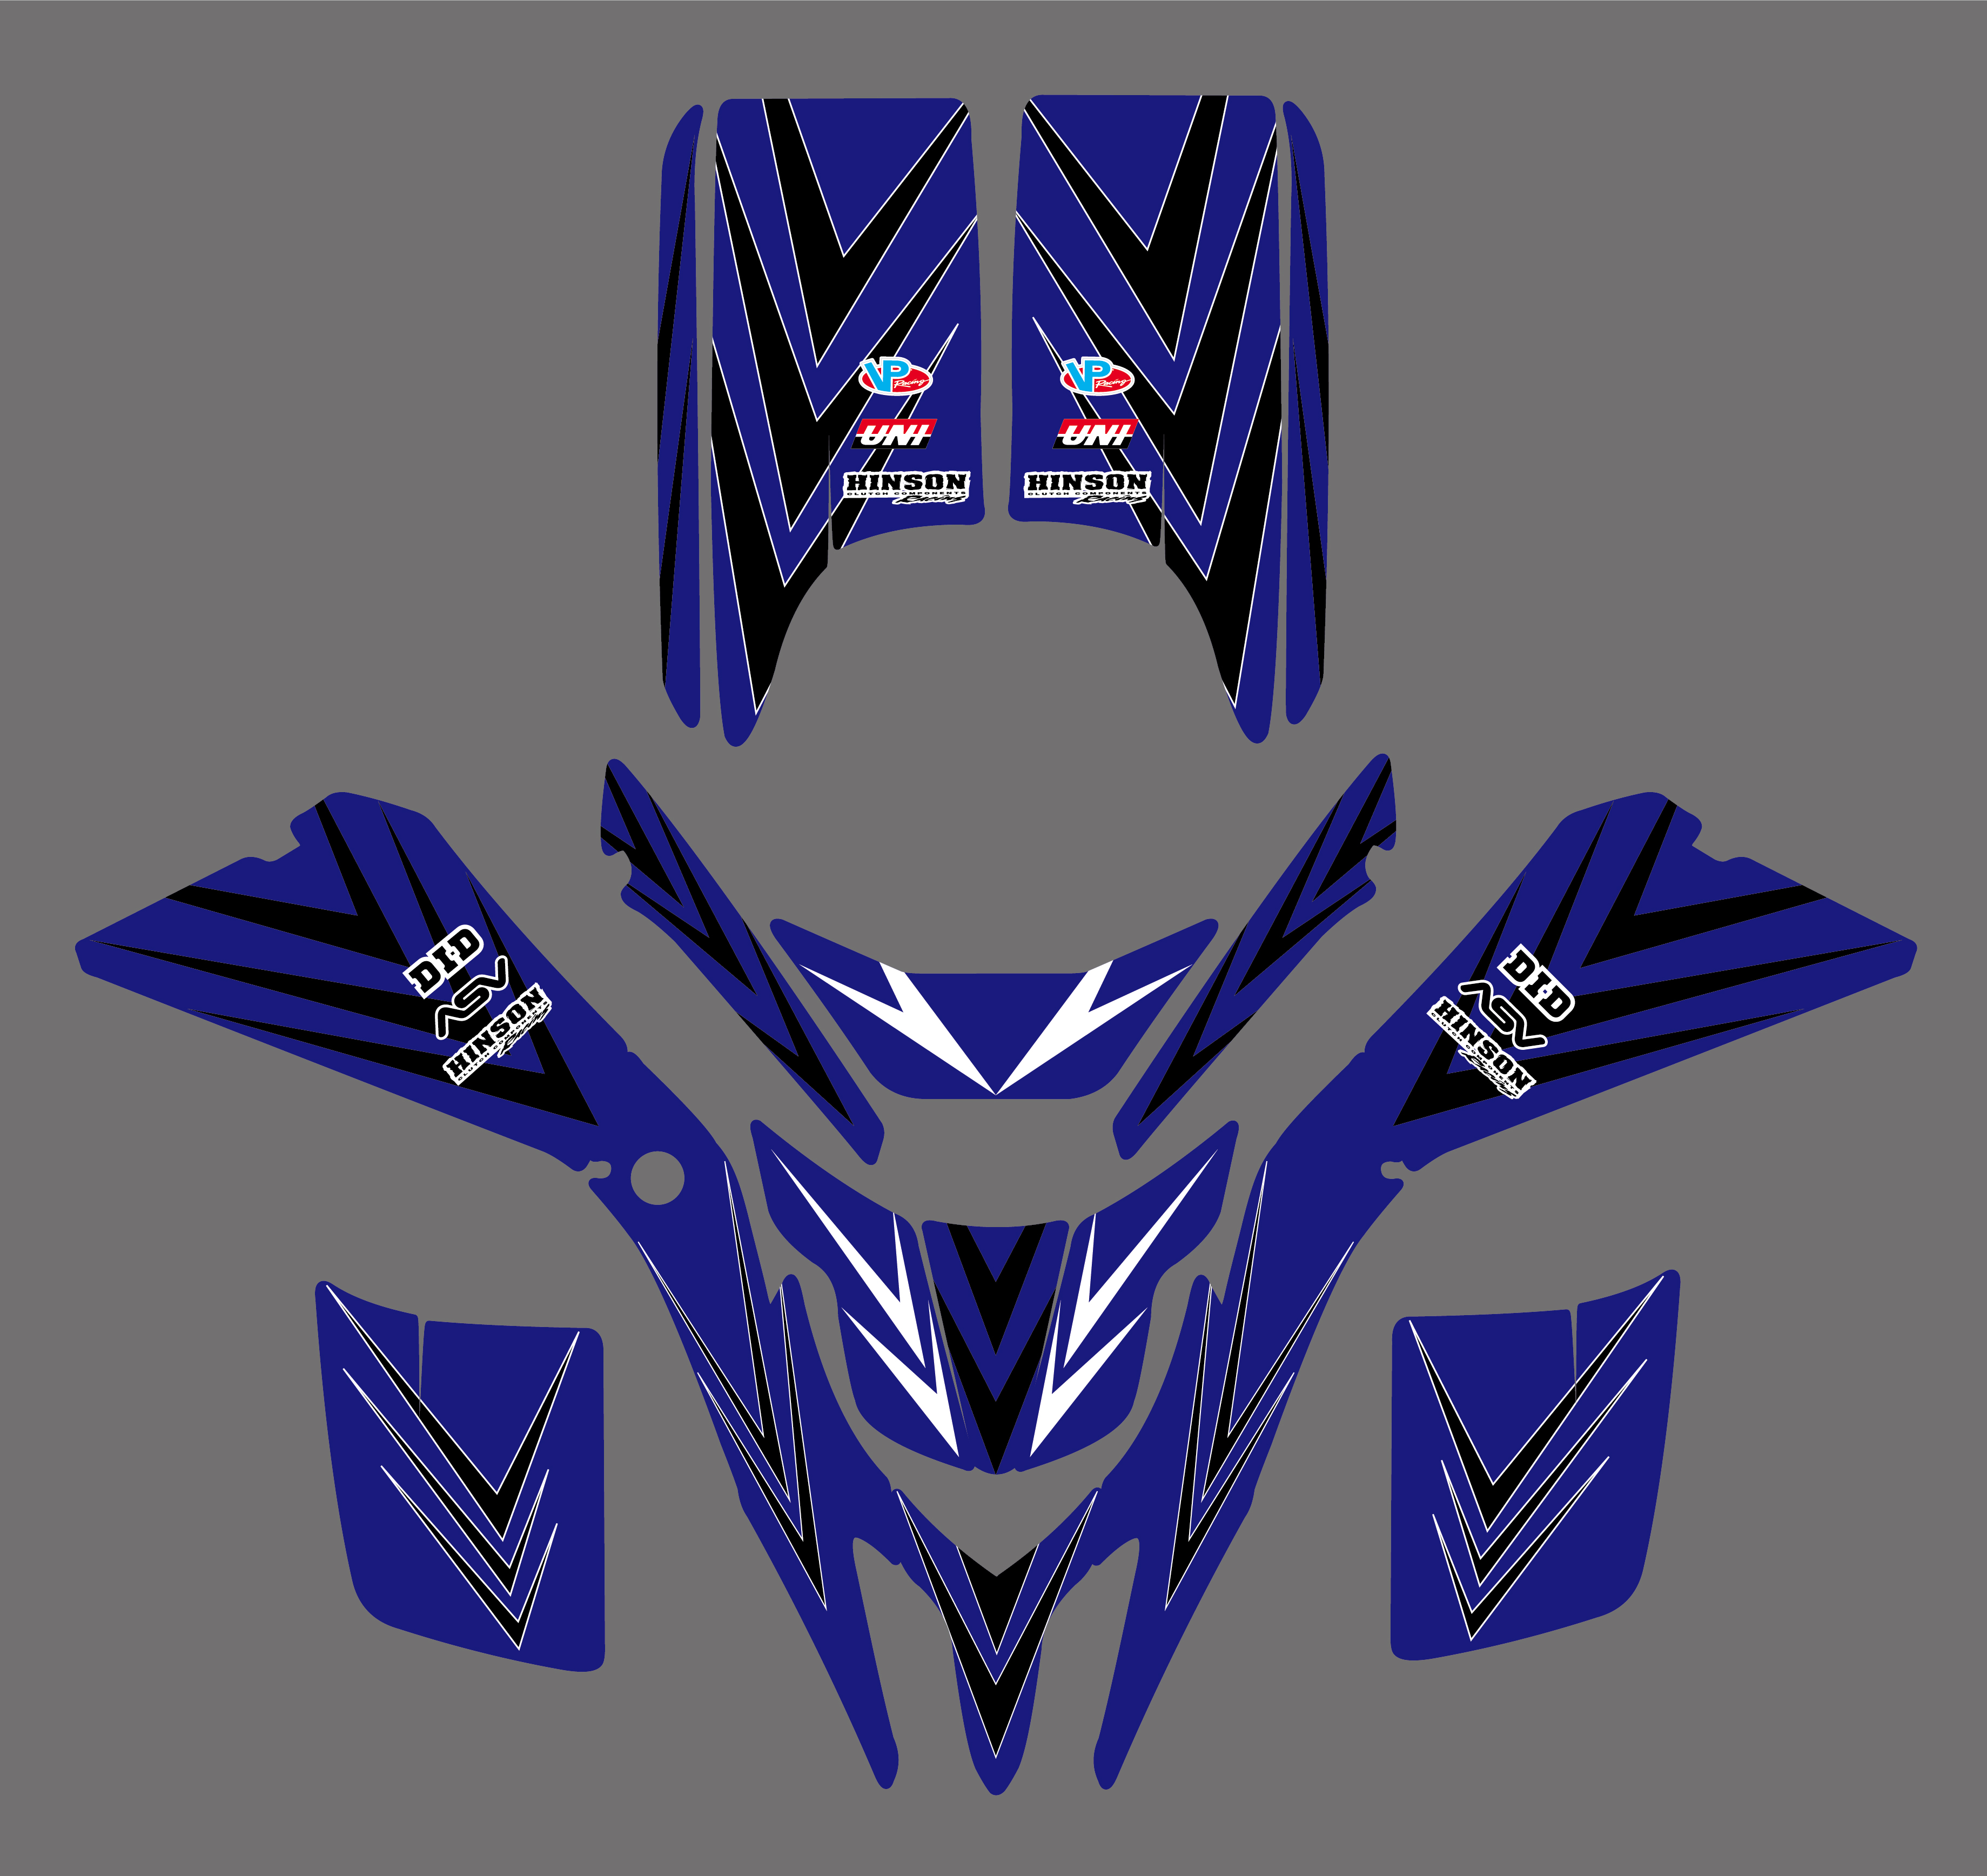 NICECNC Matching Team Graphic Background Decal And Sticker Kit For Yamaha Blaster YFS 200 YFS200 98-2002 2003 2004 2005 2006